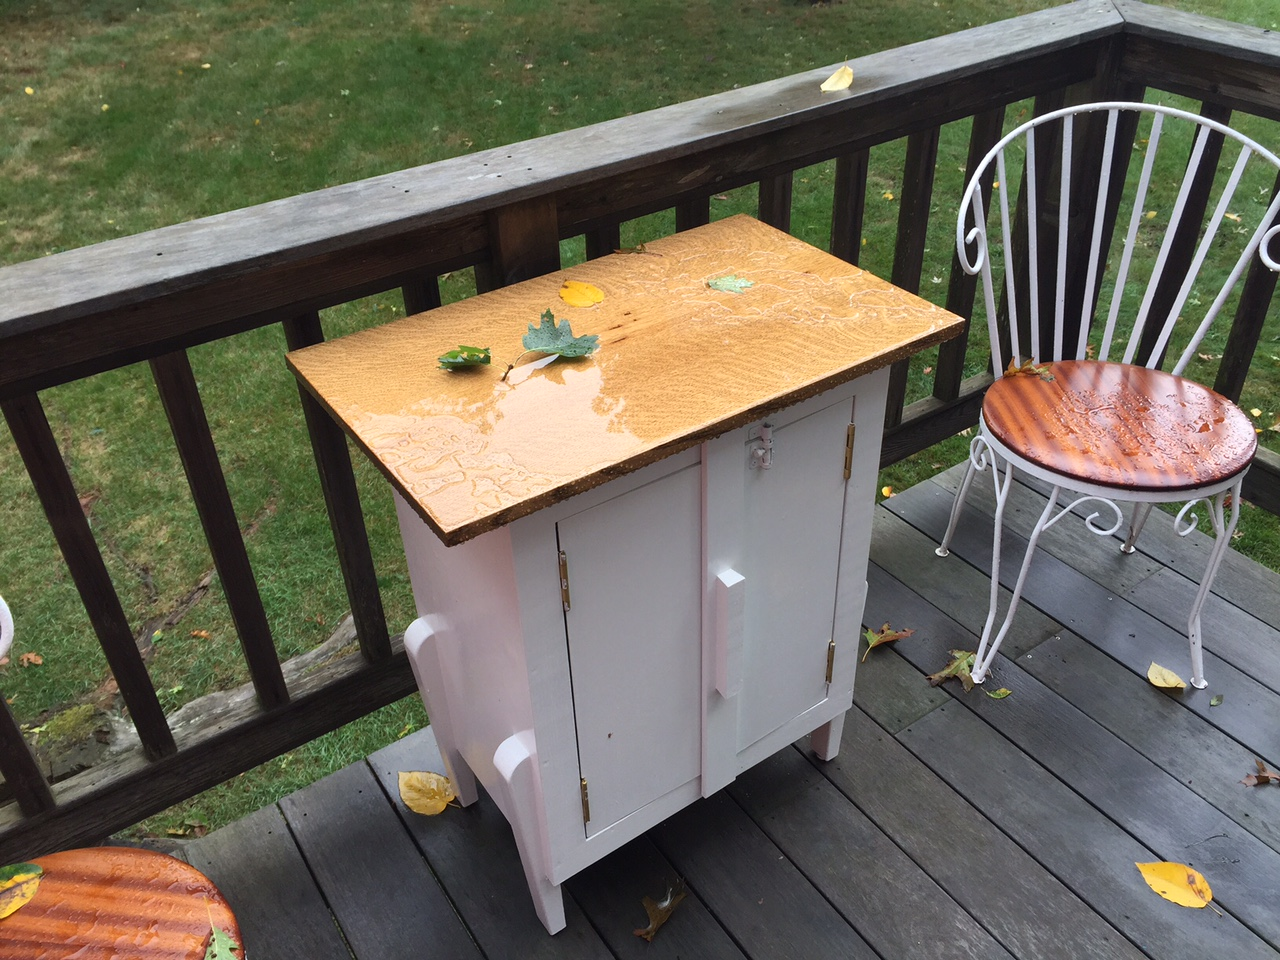 Never Paint Over Purple Heart & Outdoor Cabinet Q&A